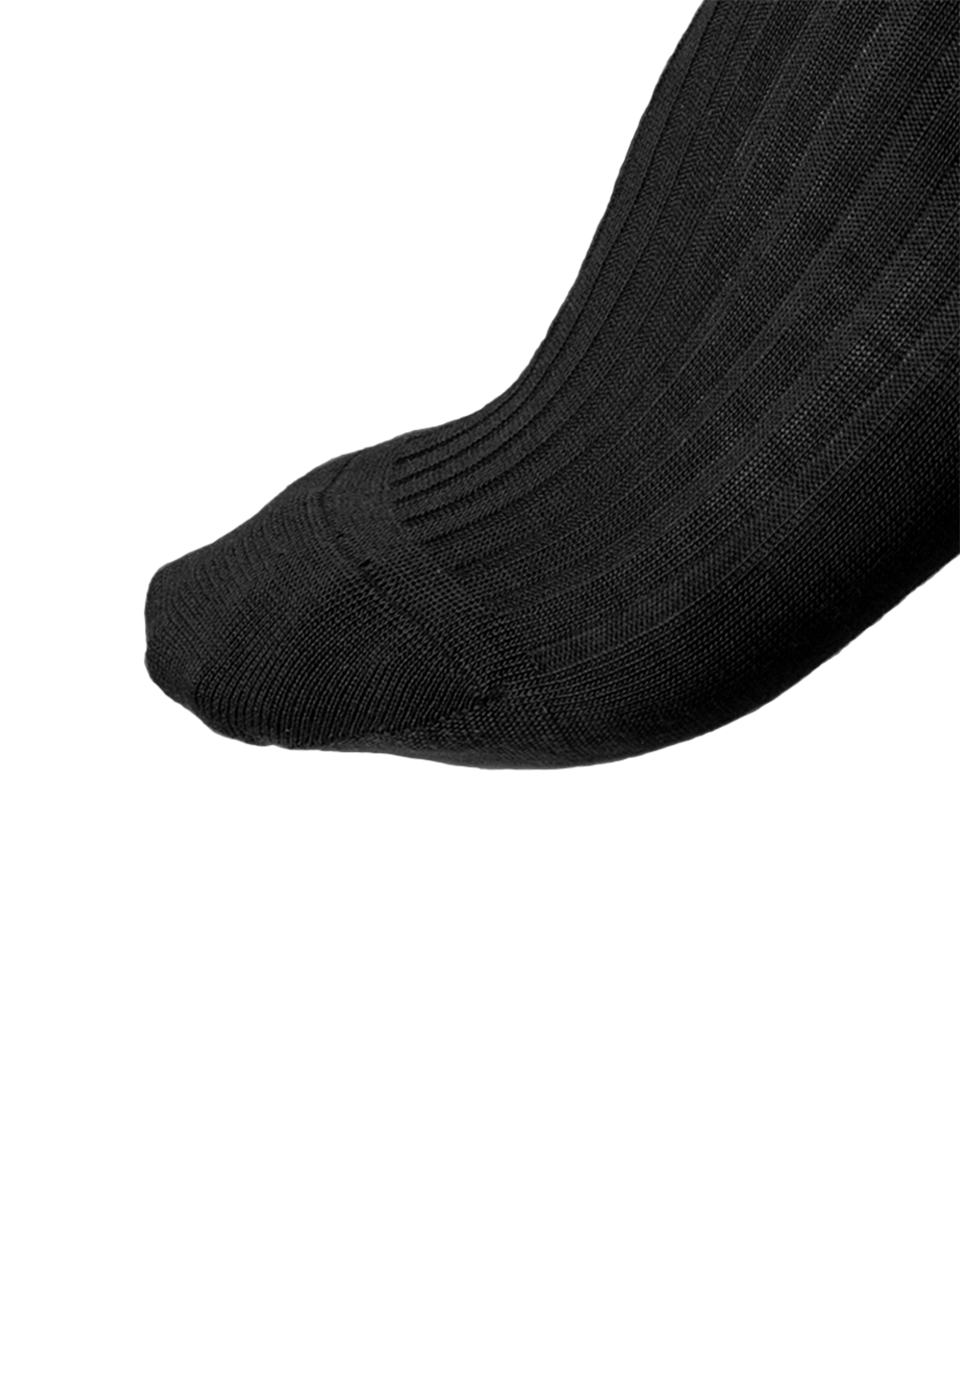 NOSOCKS long wool - zwart - tenen